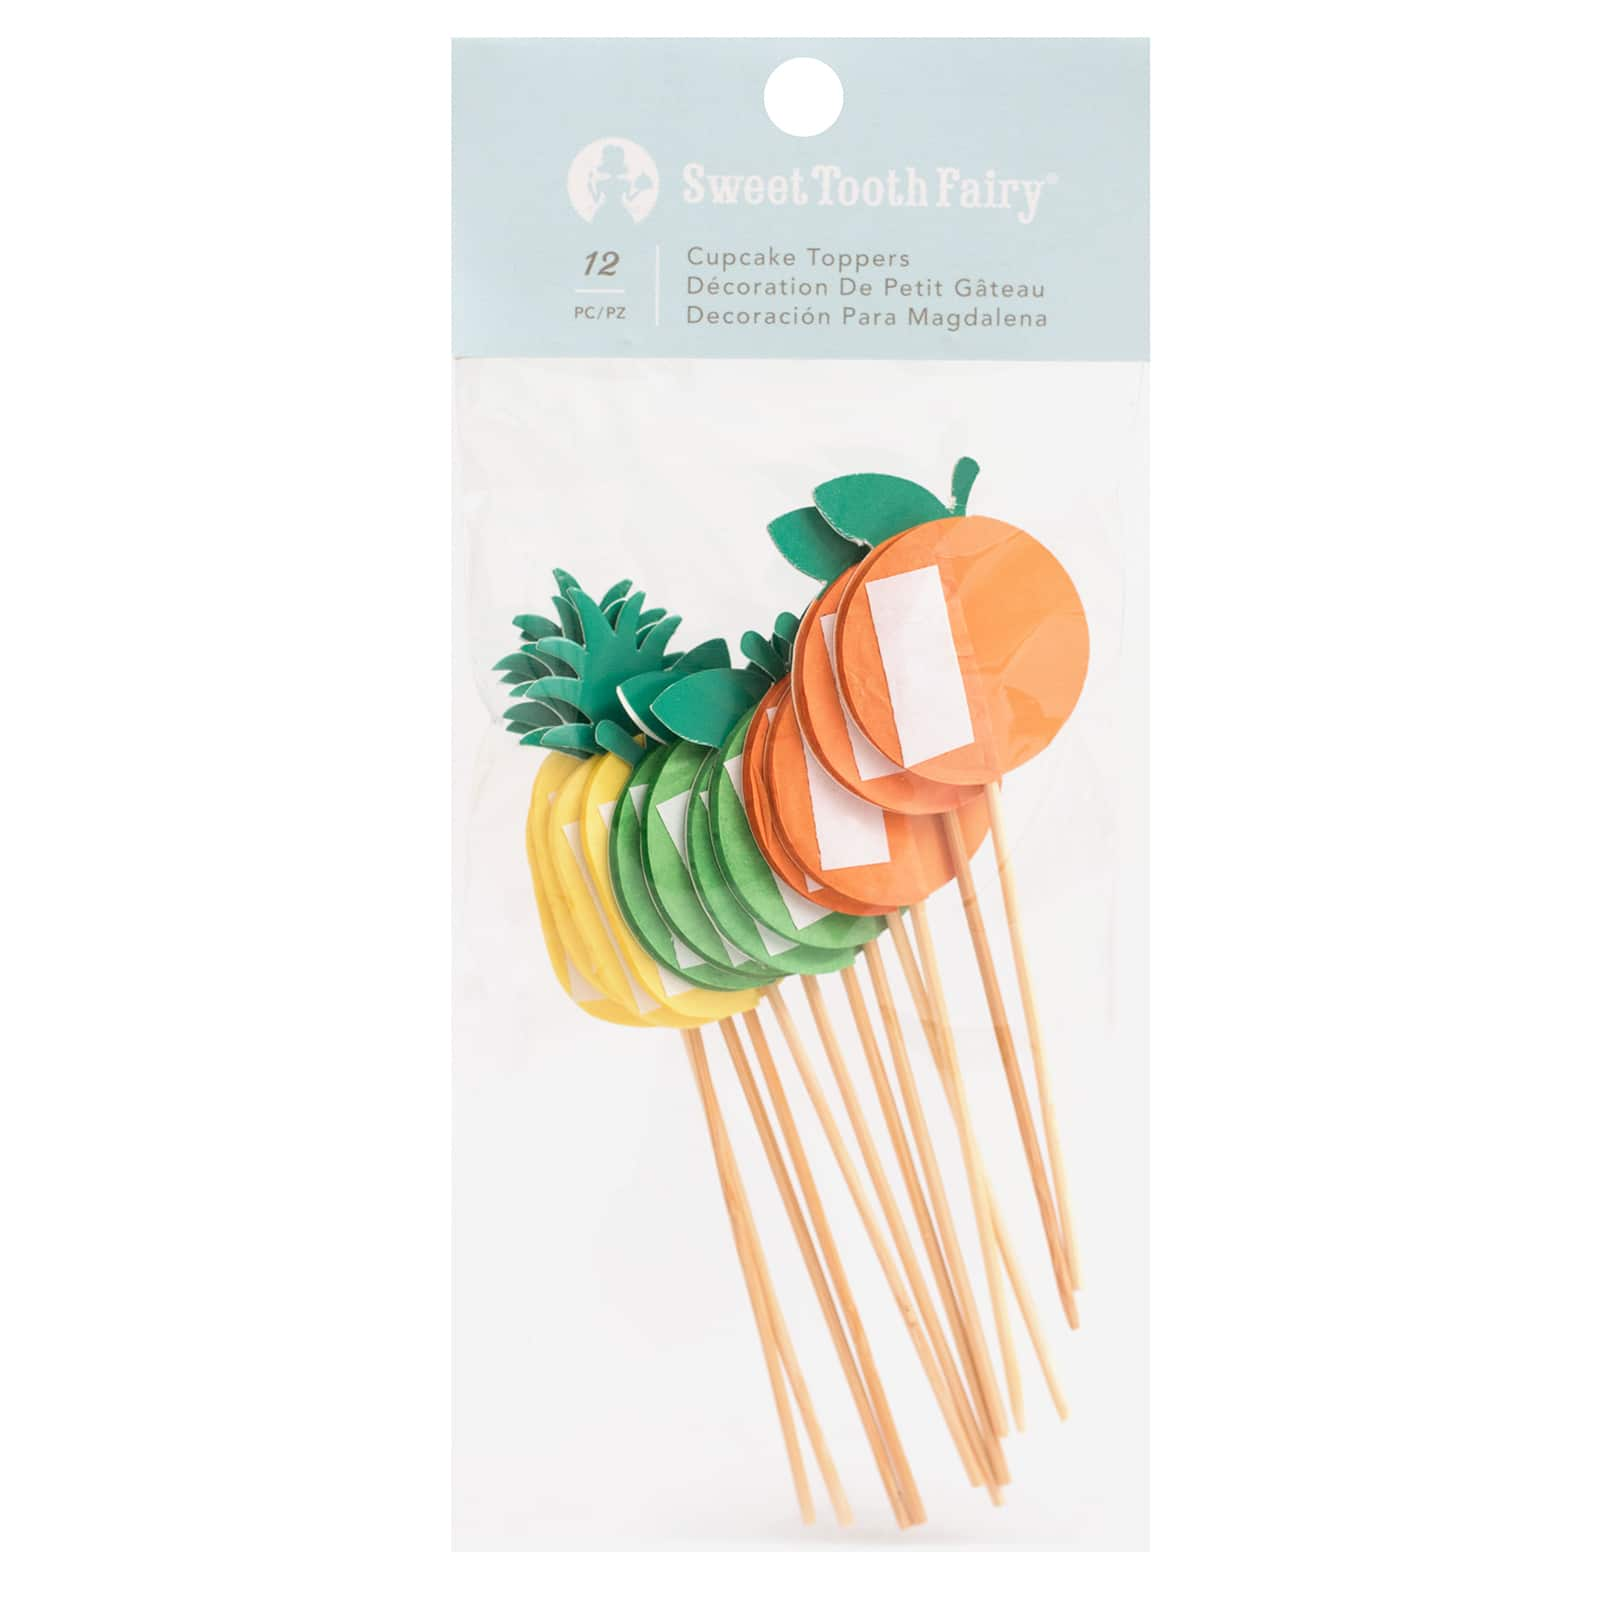 sweet tooth fairy fruity cupcake toppers 12ct